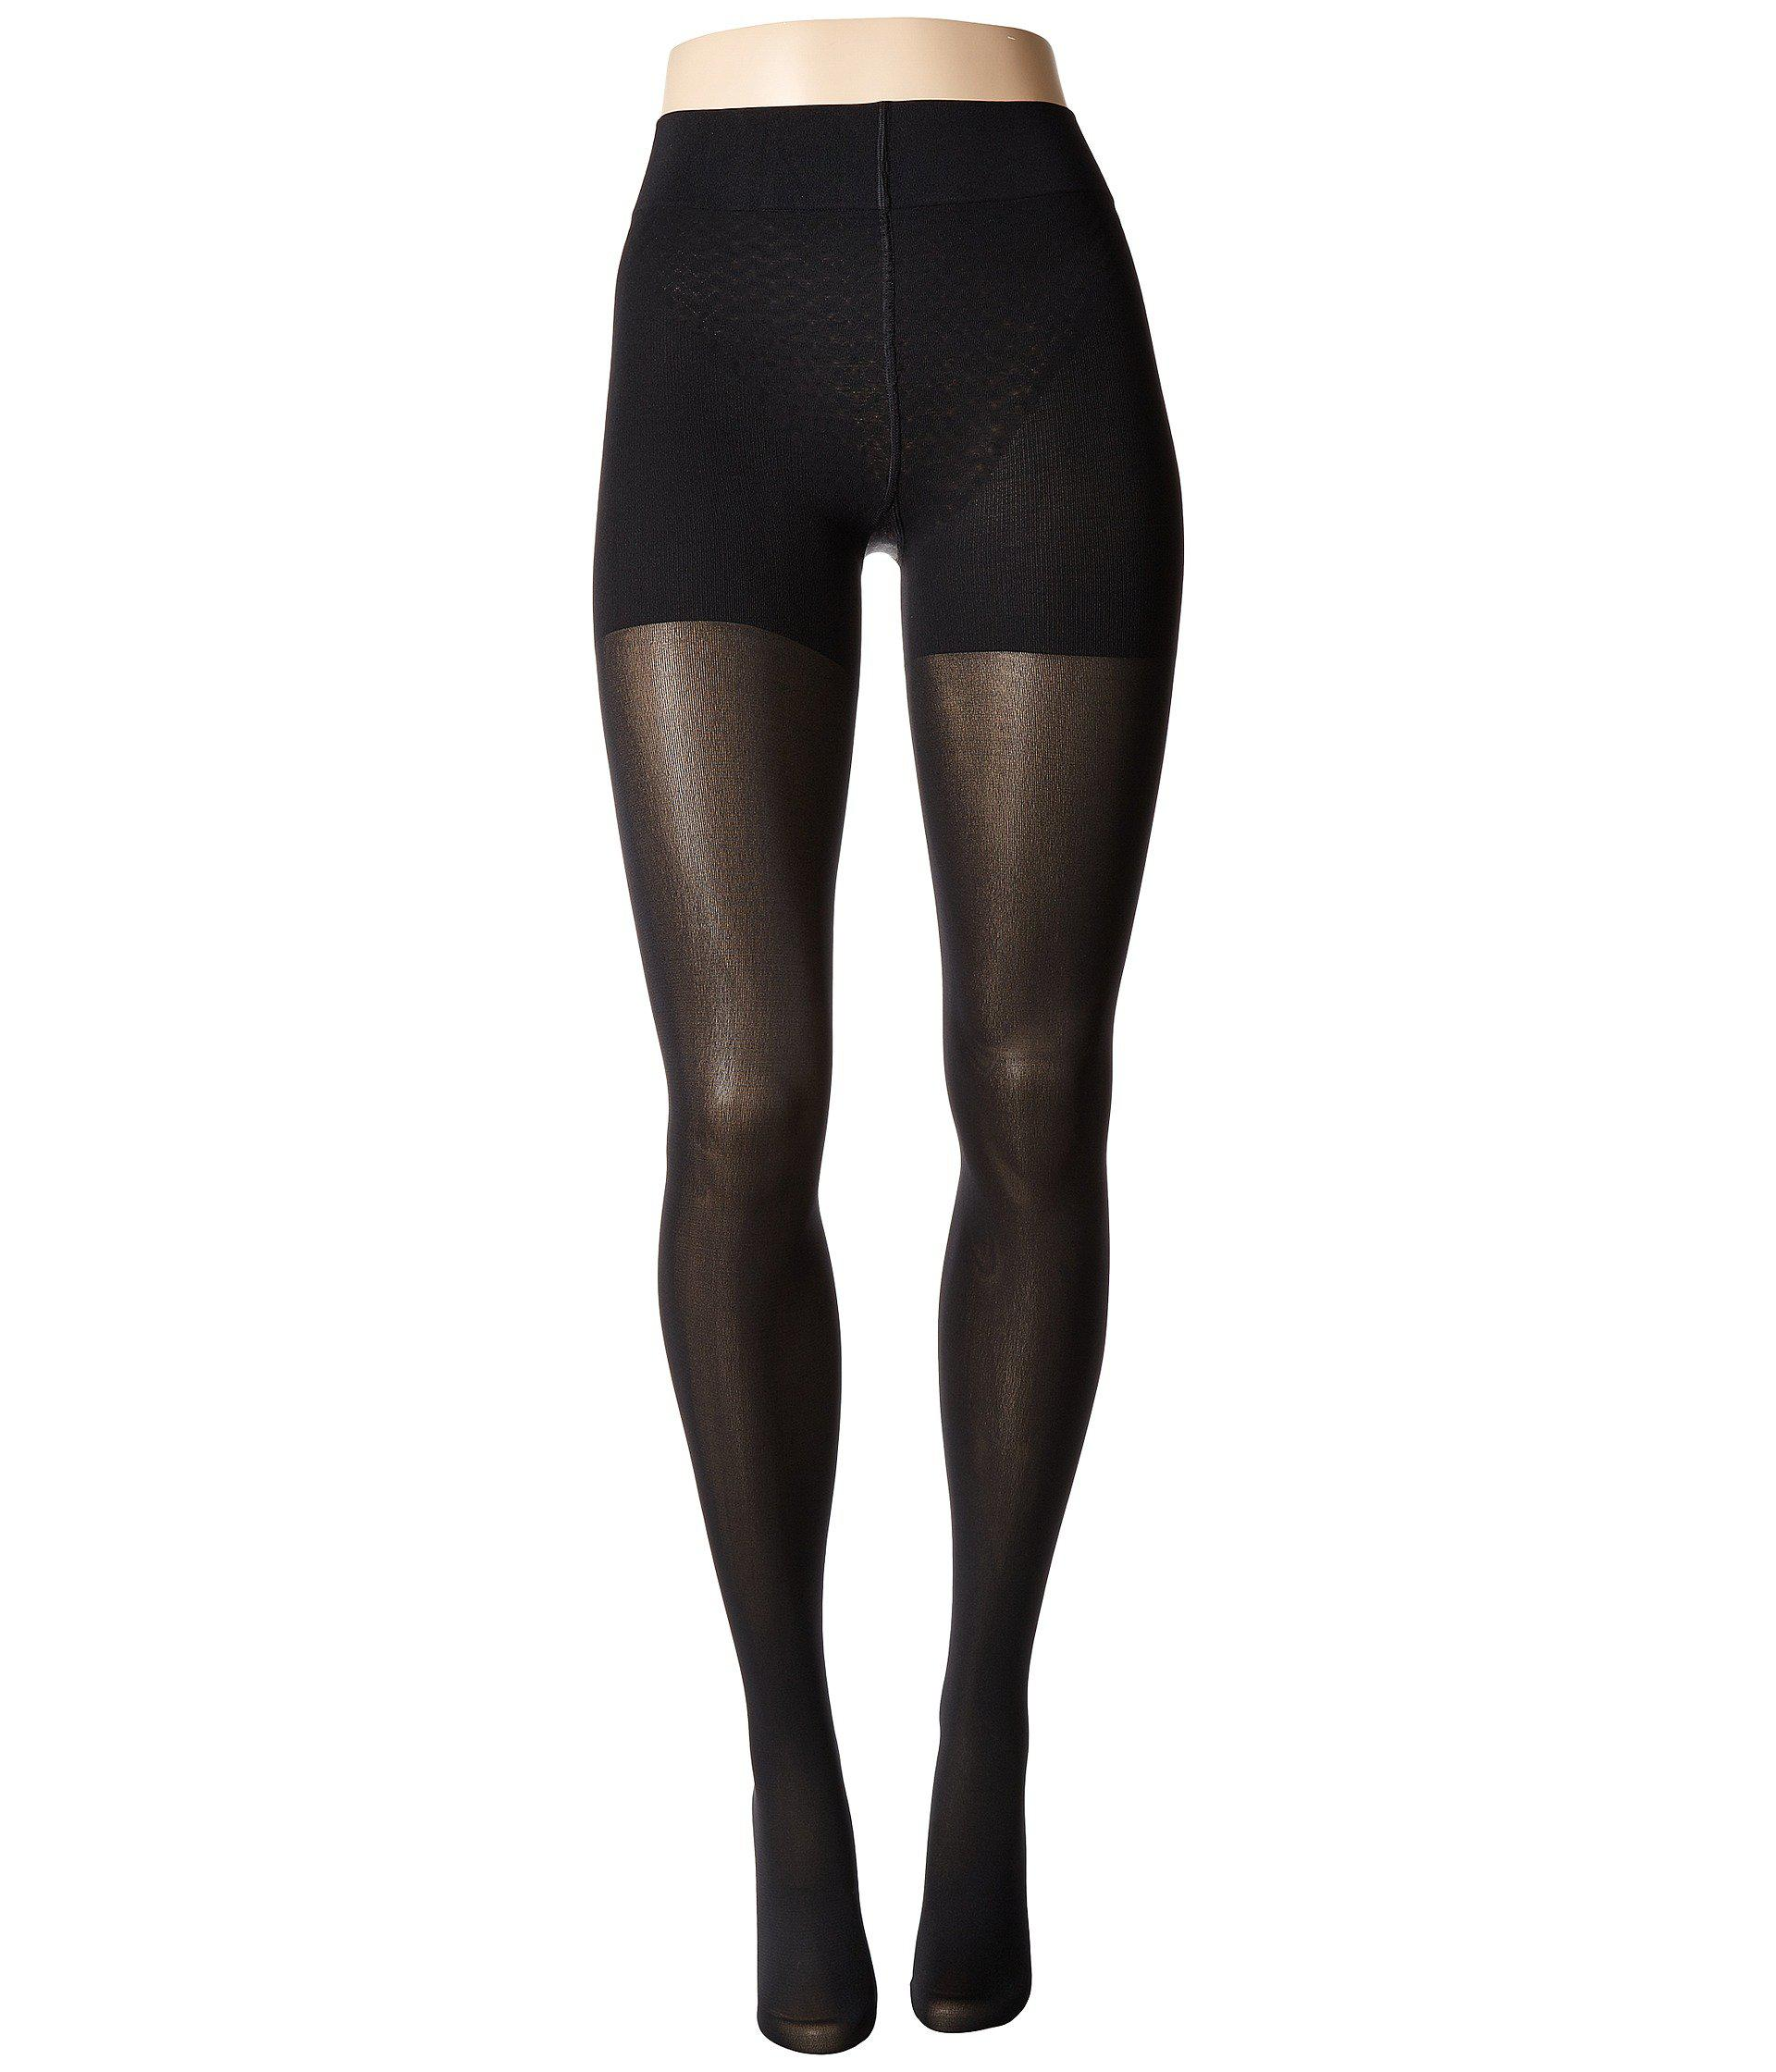 08c65db7904 Lyst - Wolford Velvet De Luxe 66 Control Top Tights (nearly Black ...